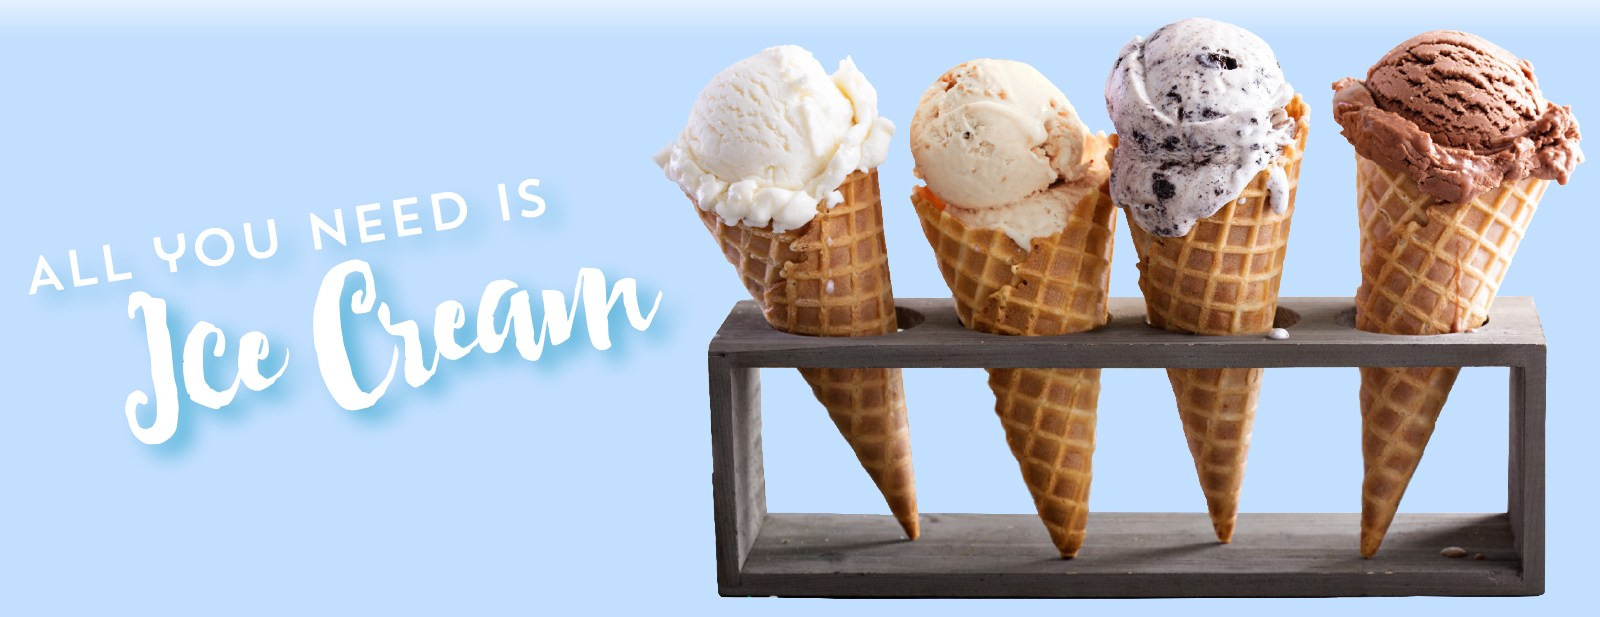 All you need is ice cream!